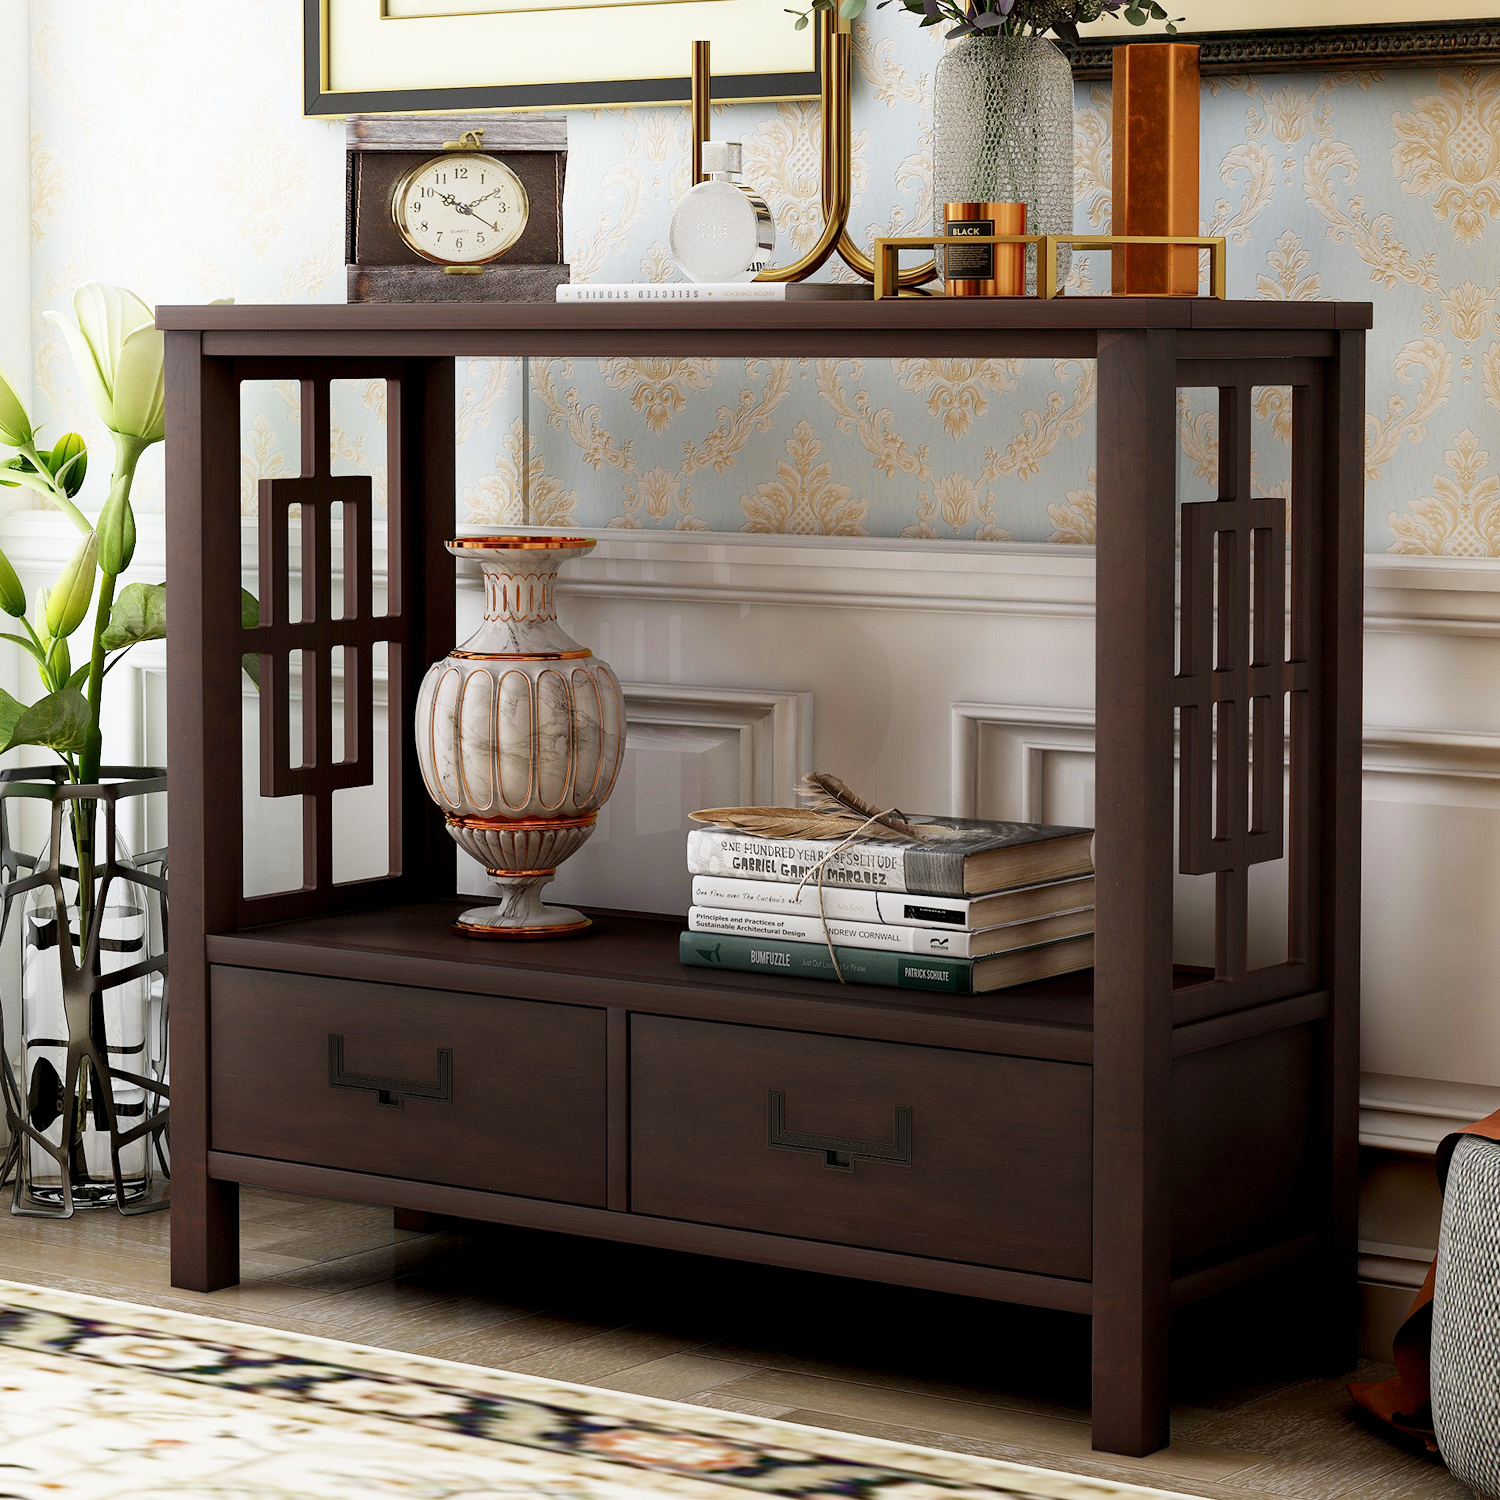 Buffet Sideboard Console Sofa Table with Drawers ...